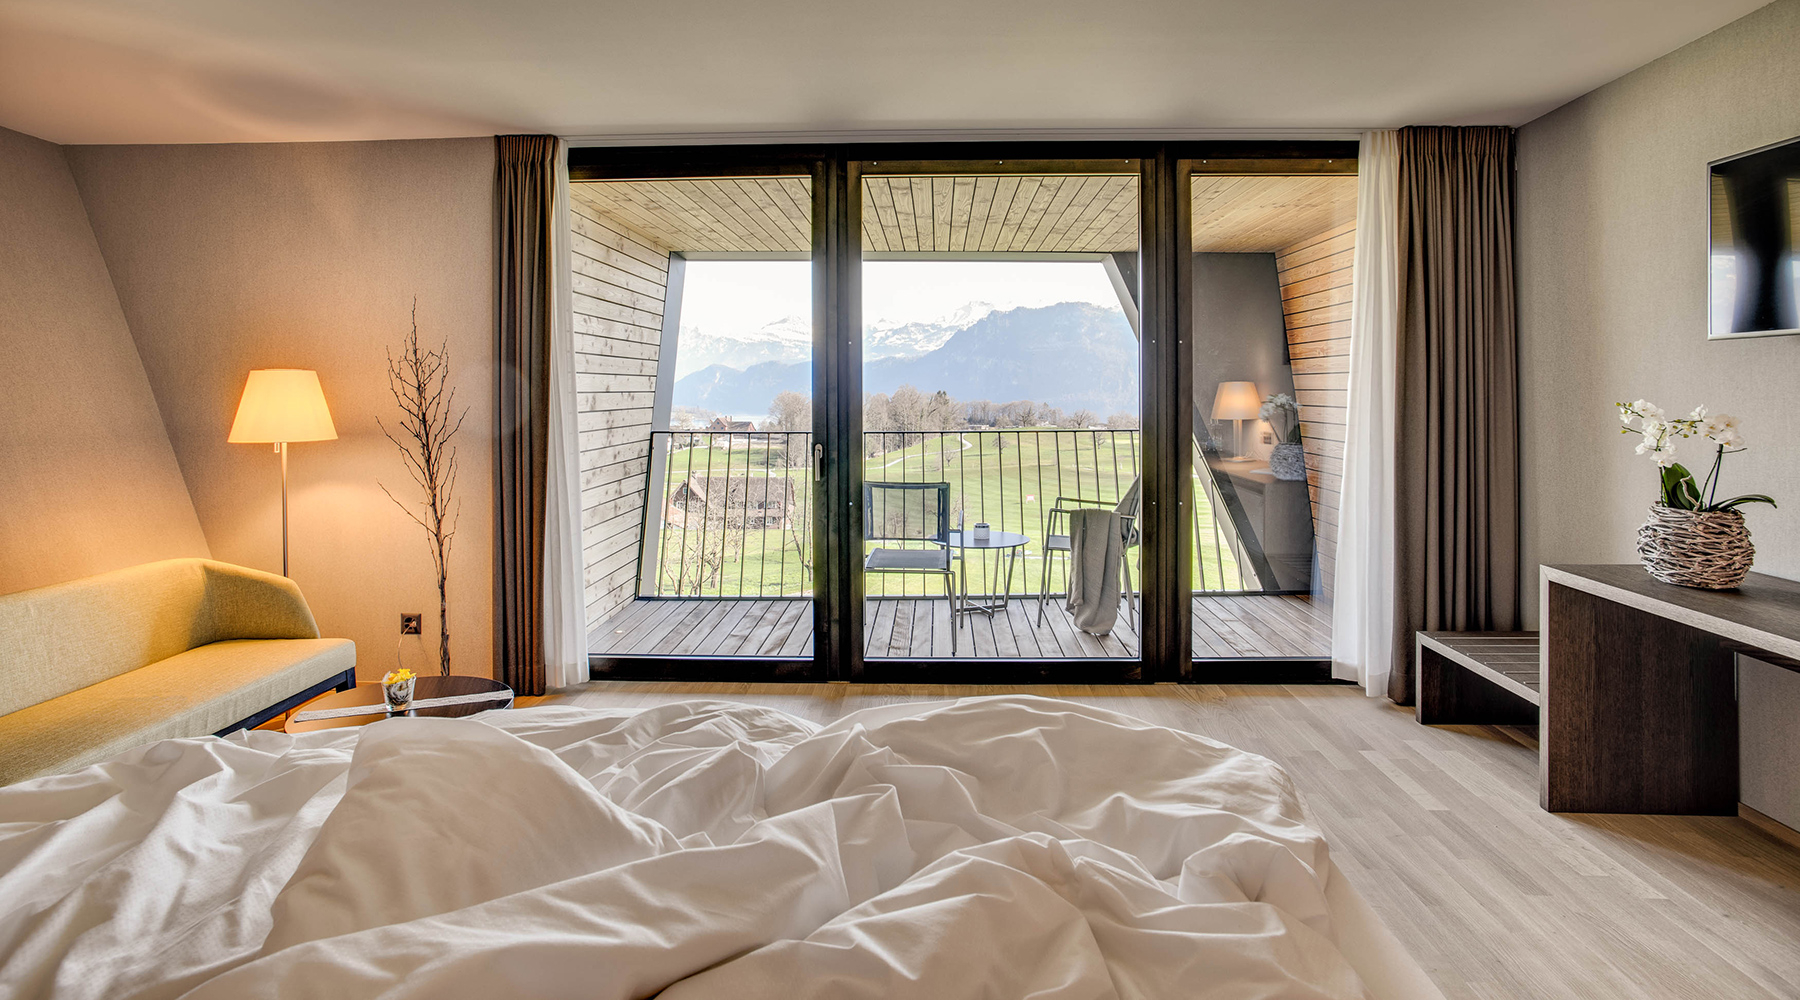 <span class='cycle-icon SLEEPING'></span><span class='cycle-title'>SLEEPING</span><span class='cycle-subtitle'>Relax, unwind, enjoy - in a wonderful panoramic location in the immediate vicinity of the city of Lucerne</span>